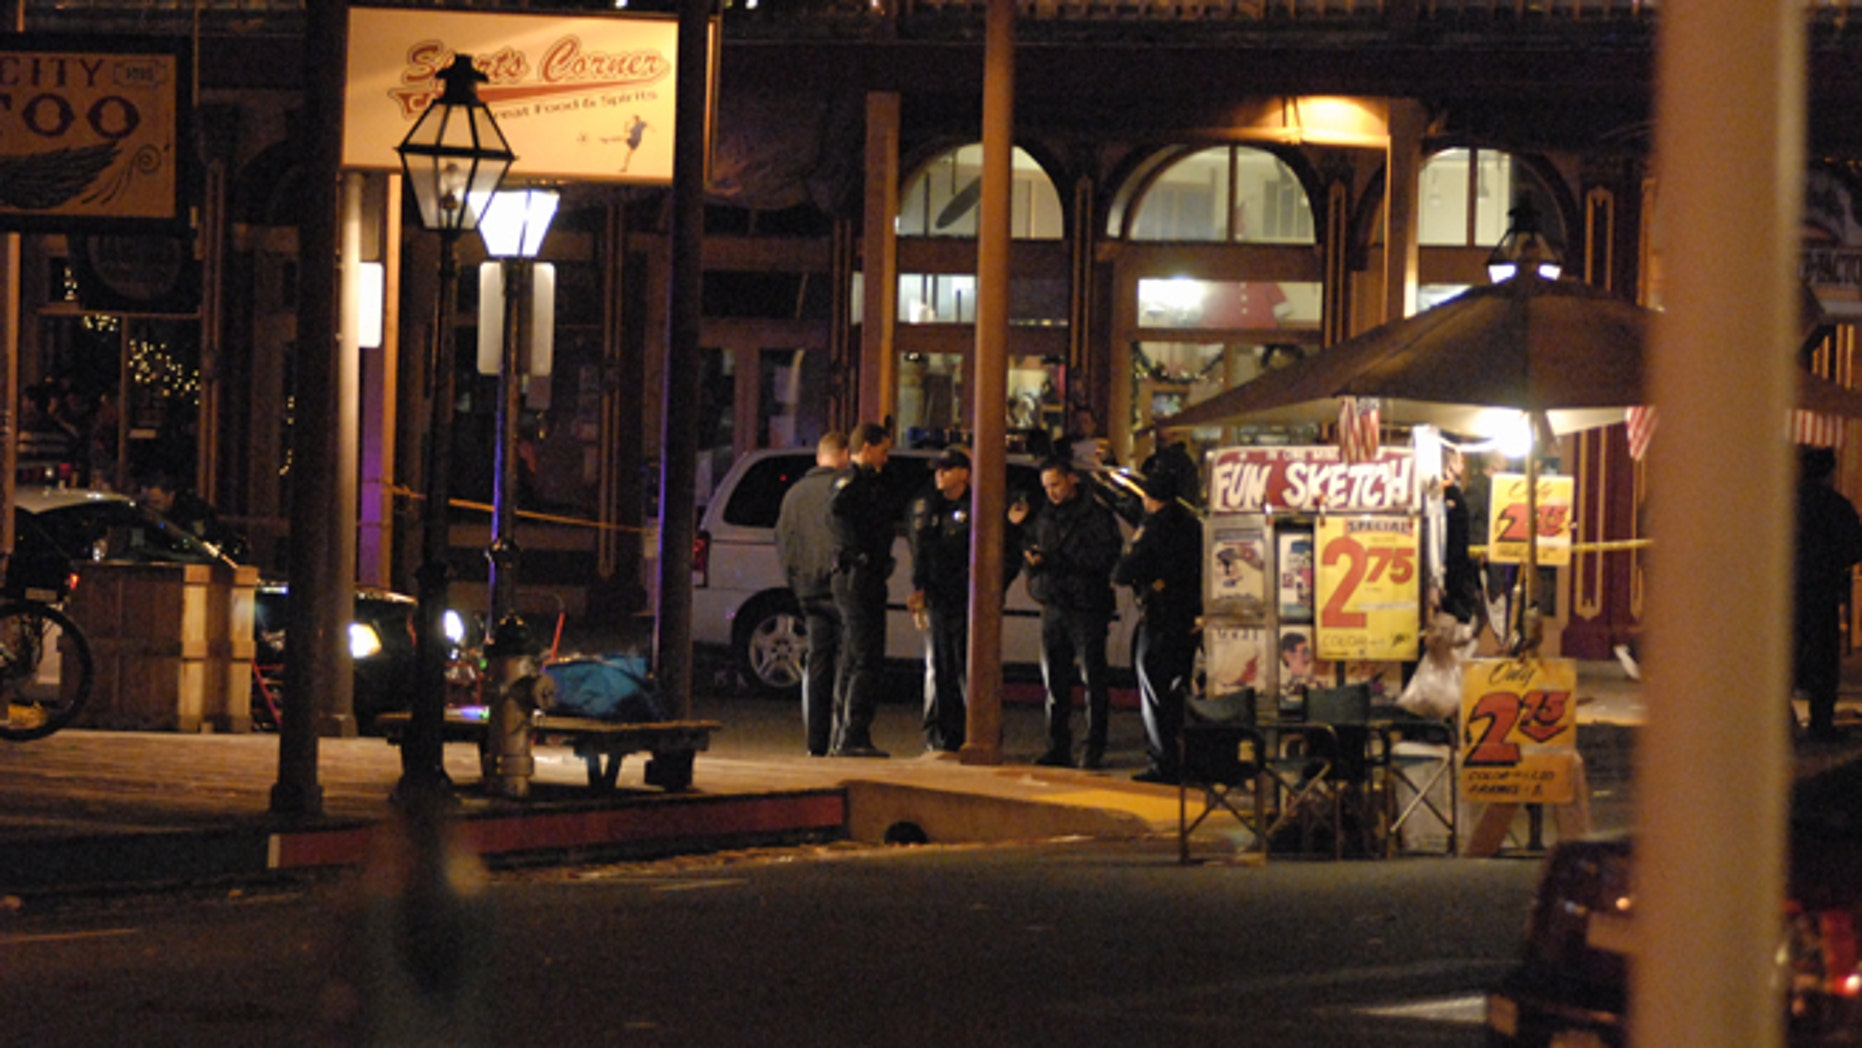 Dec. 31, 2012: In this image provided by Robert Petersen police inspect the scene of a shooting outside the Sports Corner Cafe in Sacramento Calif. (AP)